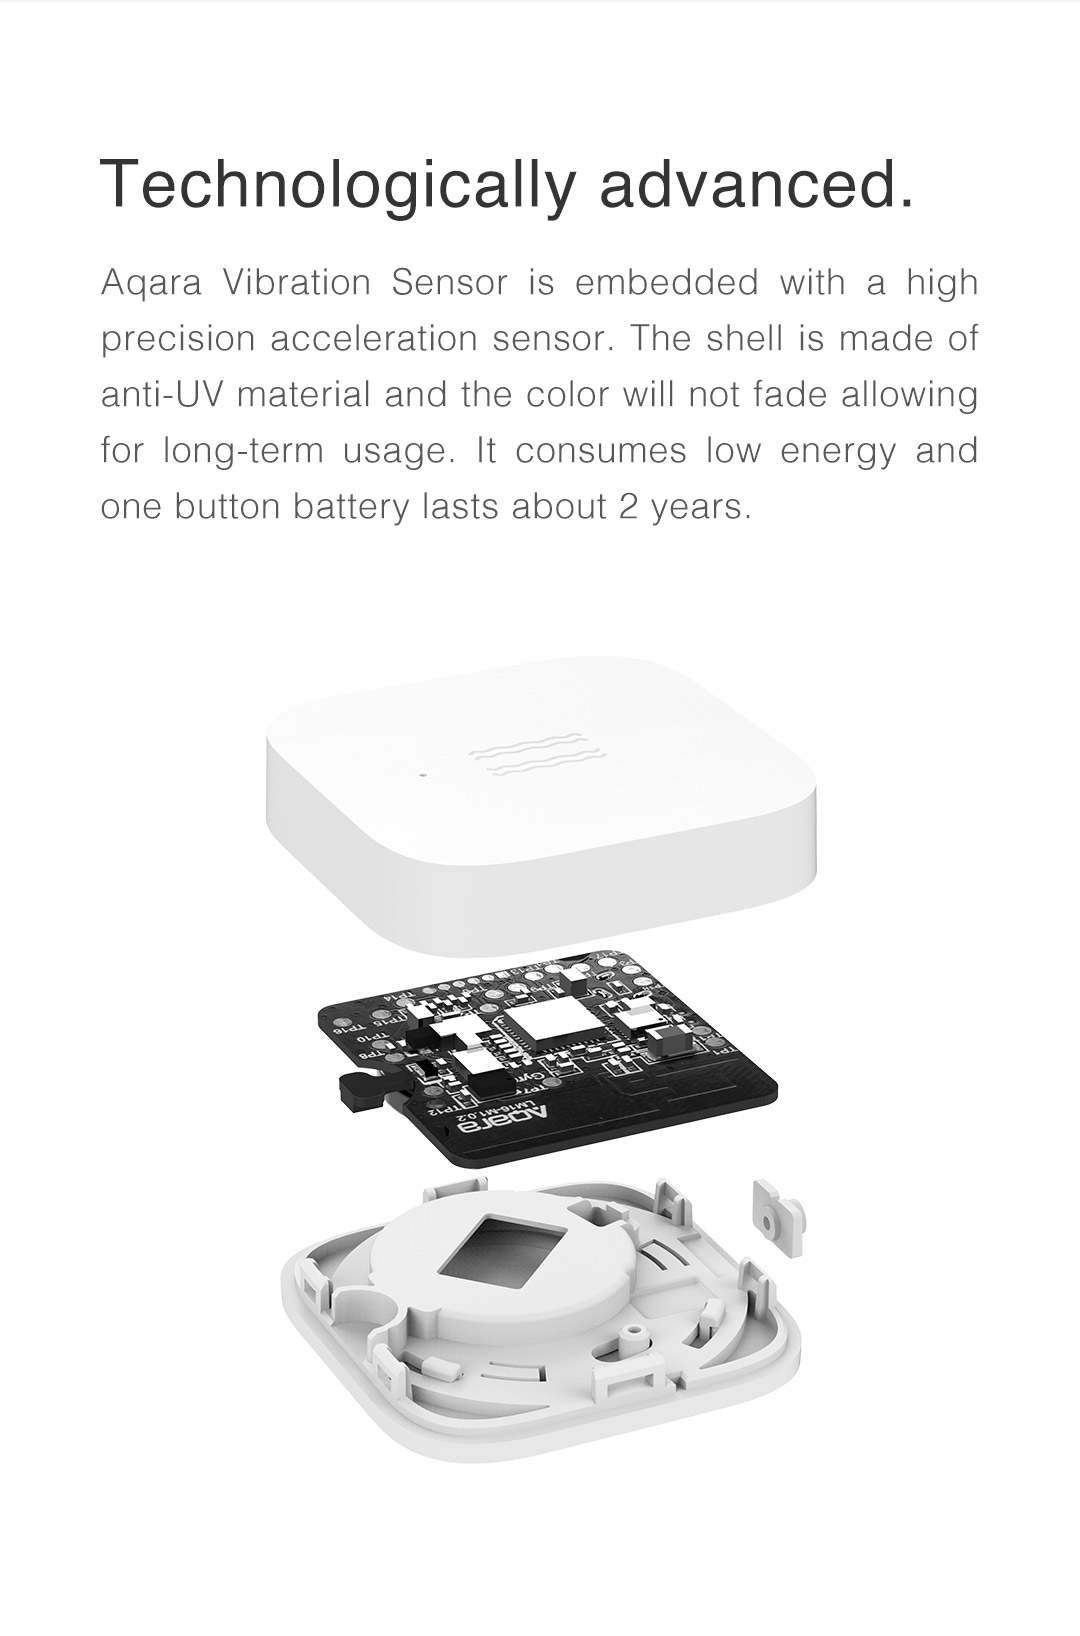 Our vibration sensor is embedded with a high precision acceleration sensor.